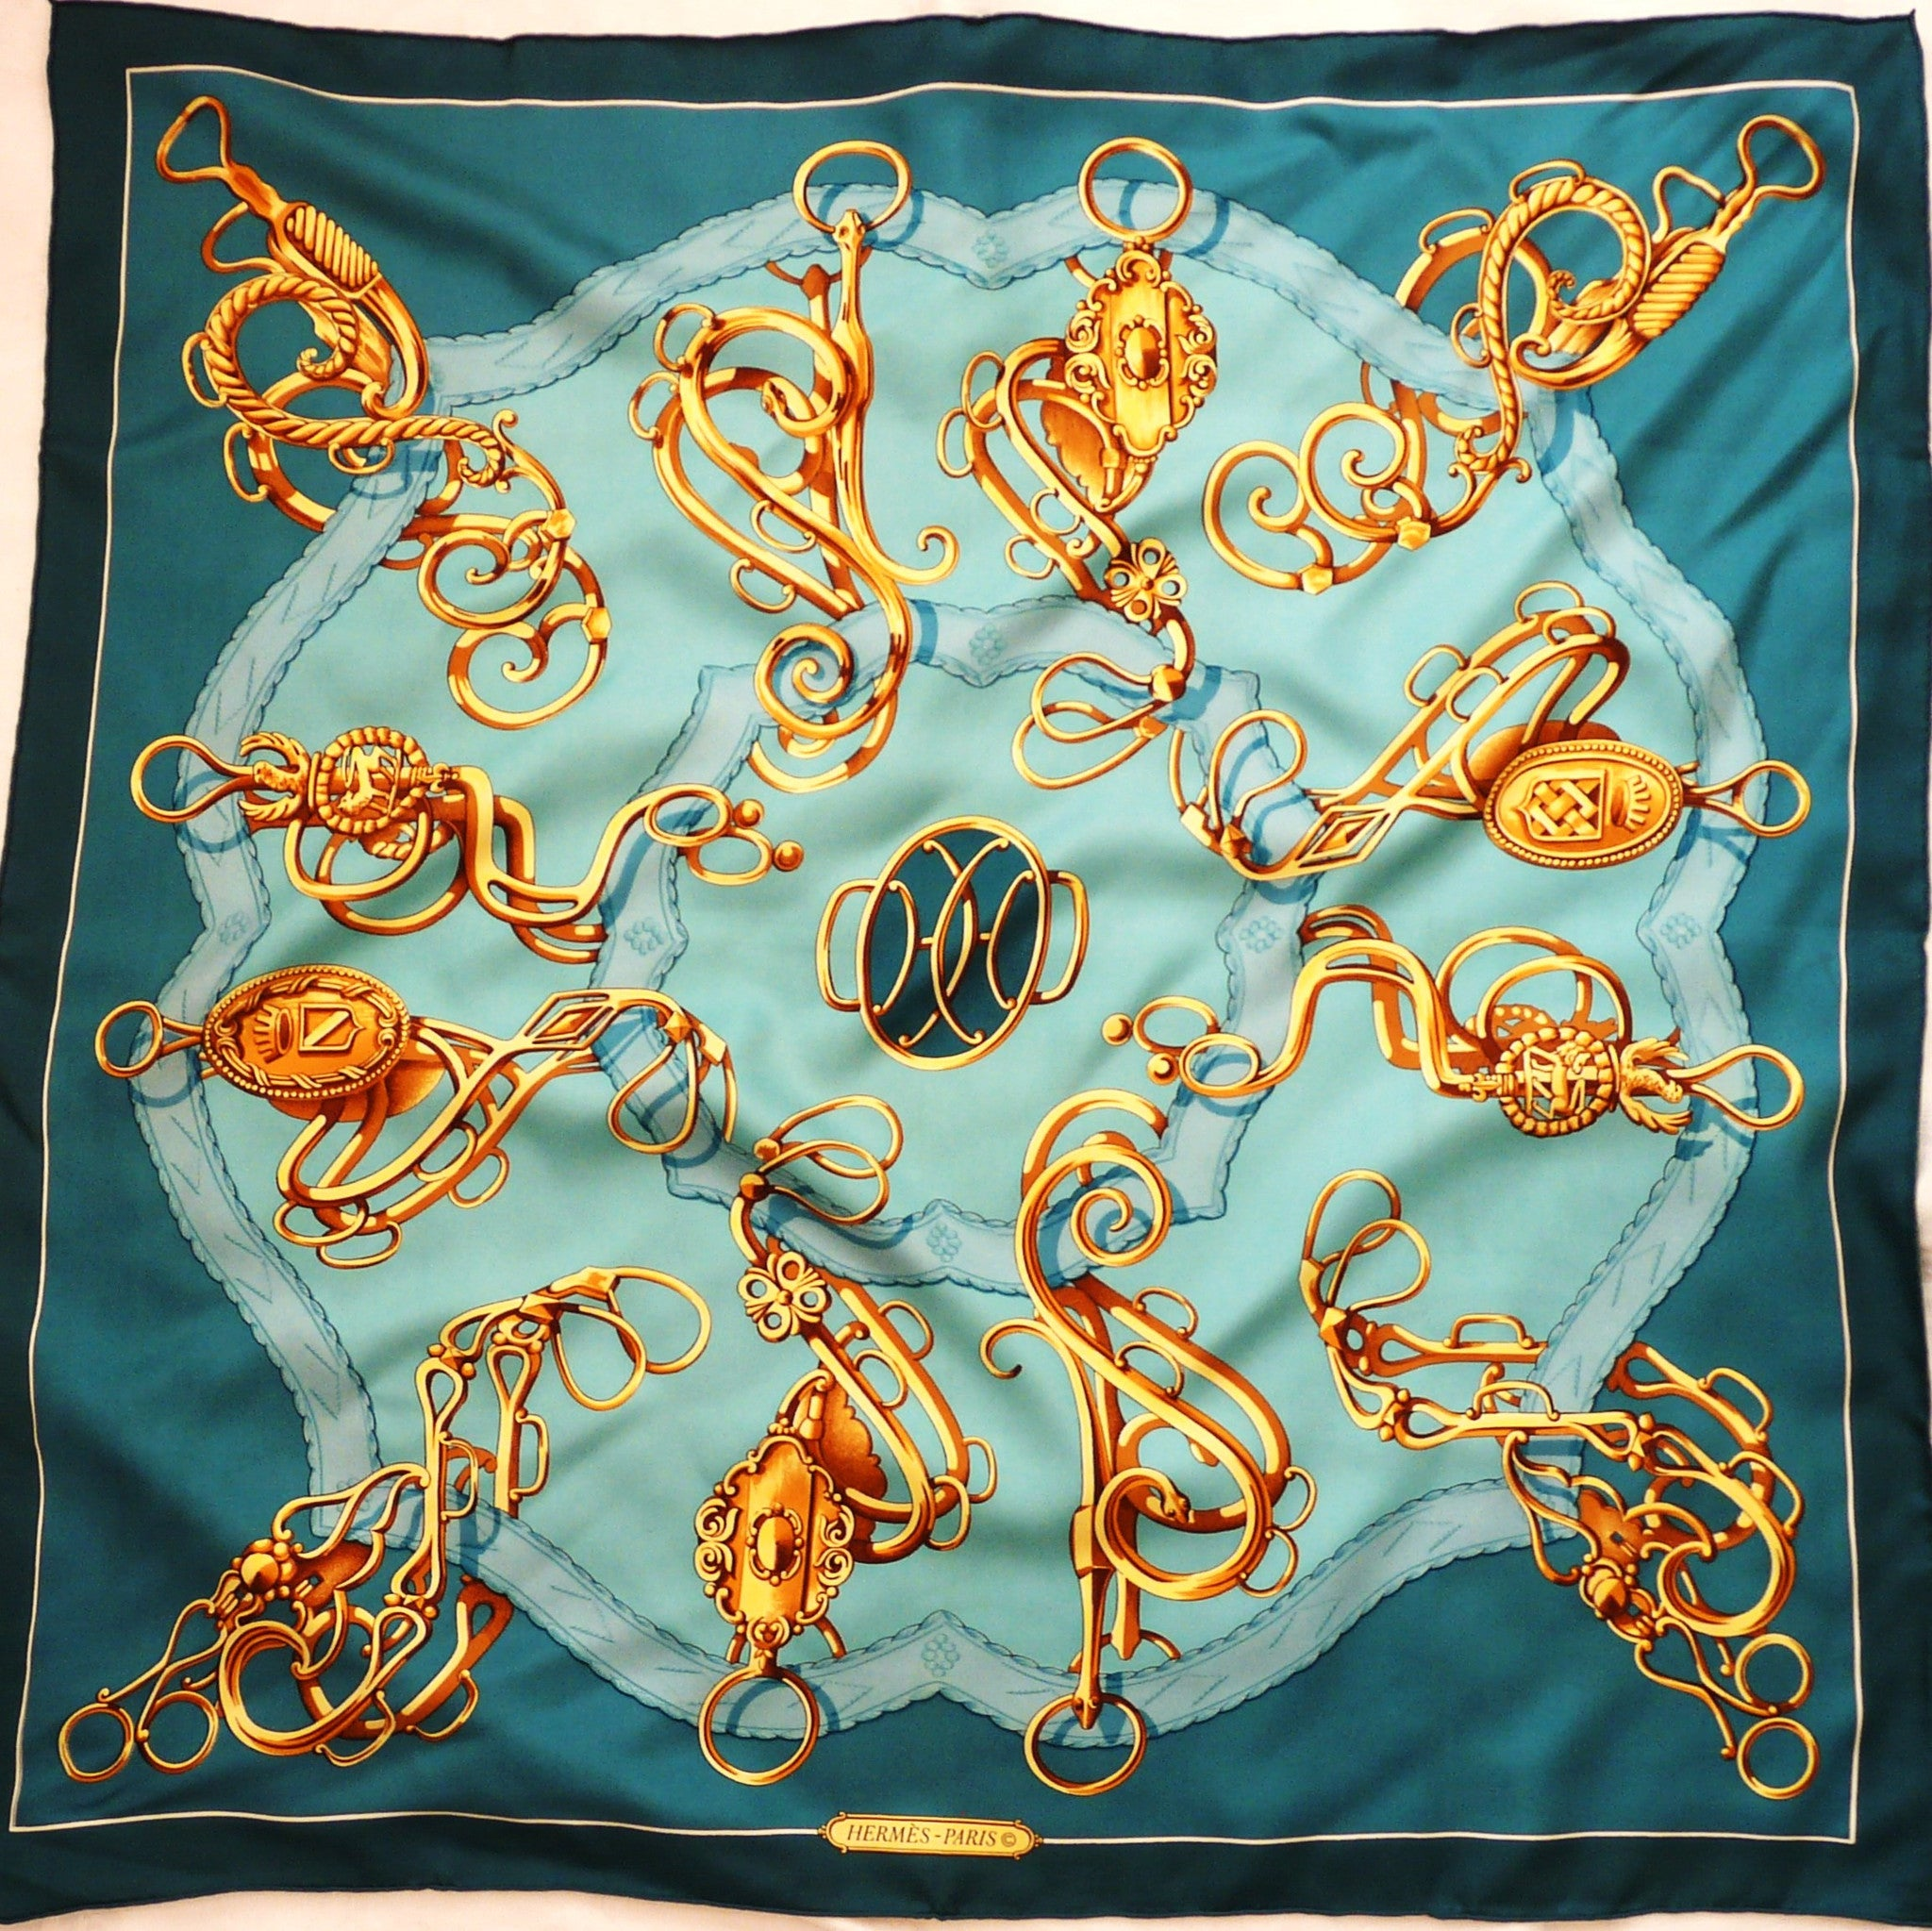 Authentic Vintage Hermes Silk Scarf Profile - Sellerie M. Guillemot 1974 Turquoise